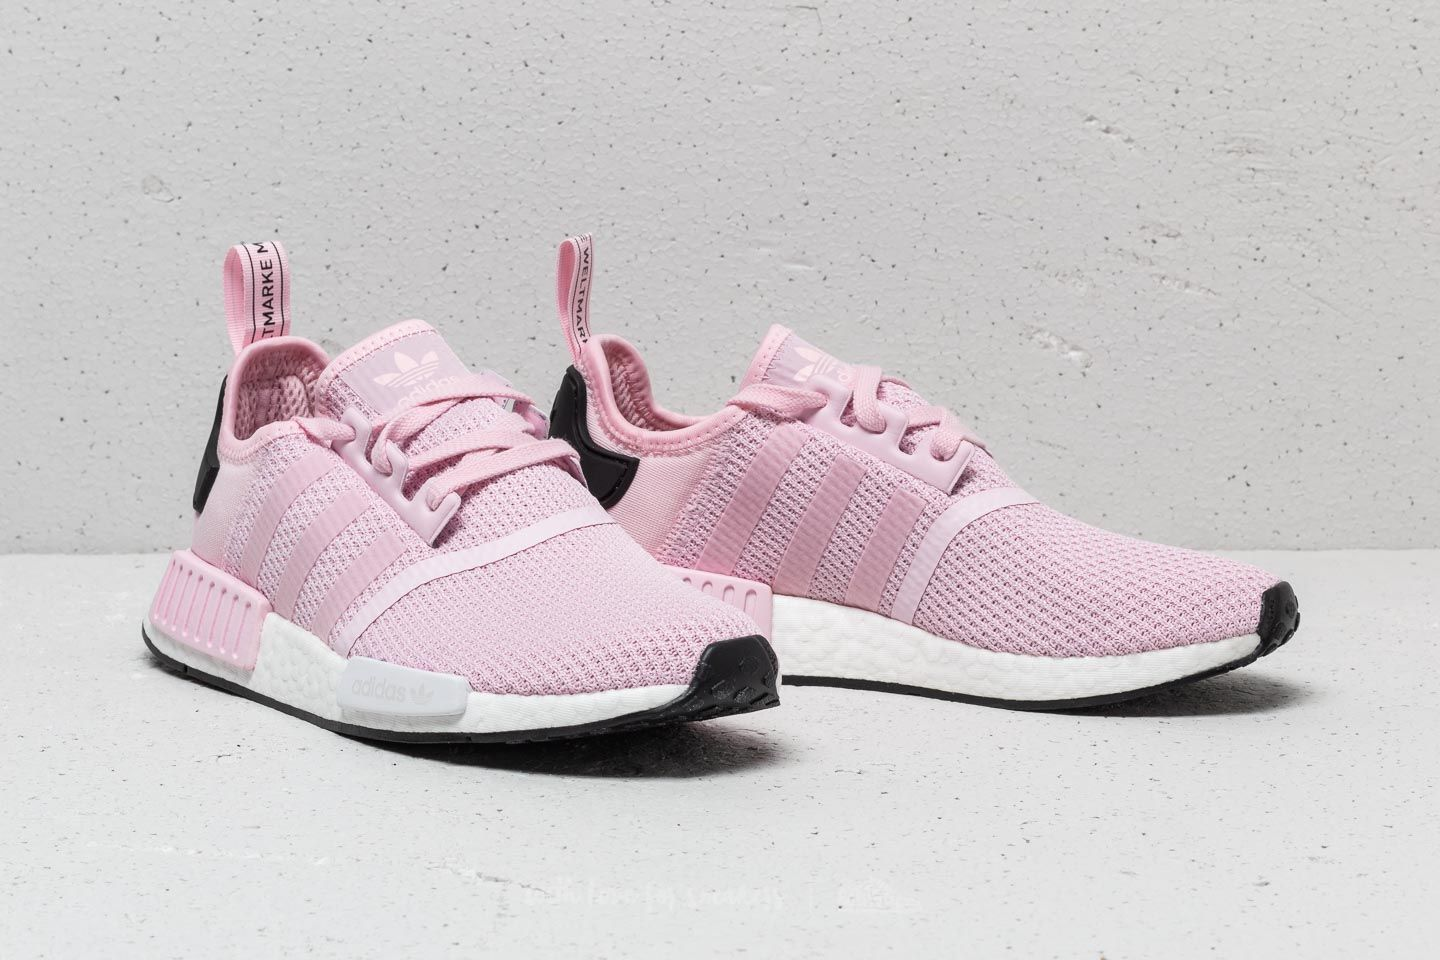 innovative design 8d22f 8d945 adidas NMD_R1 W Clear Pink/ Ftw White/ Core Black   Footshop